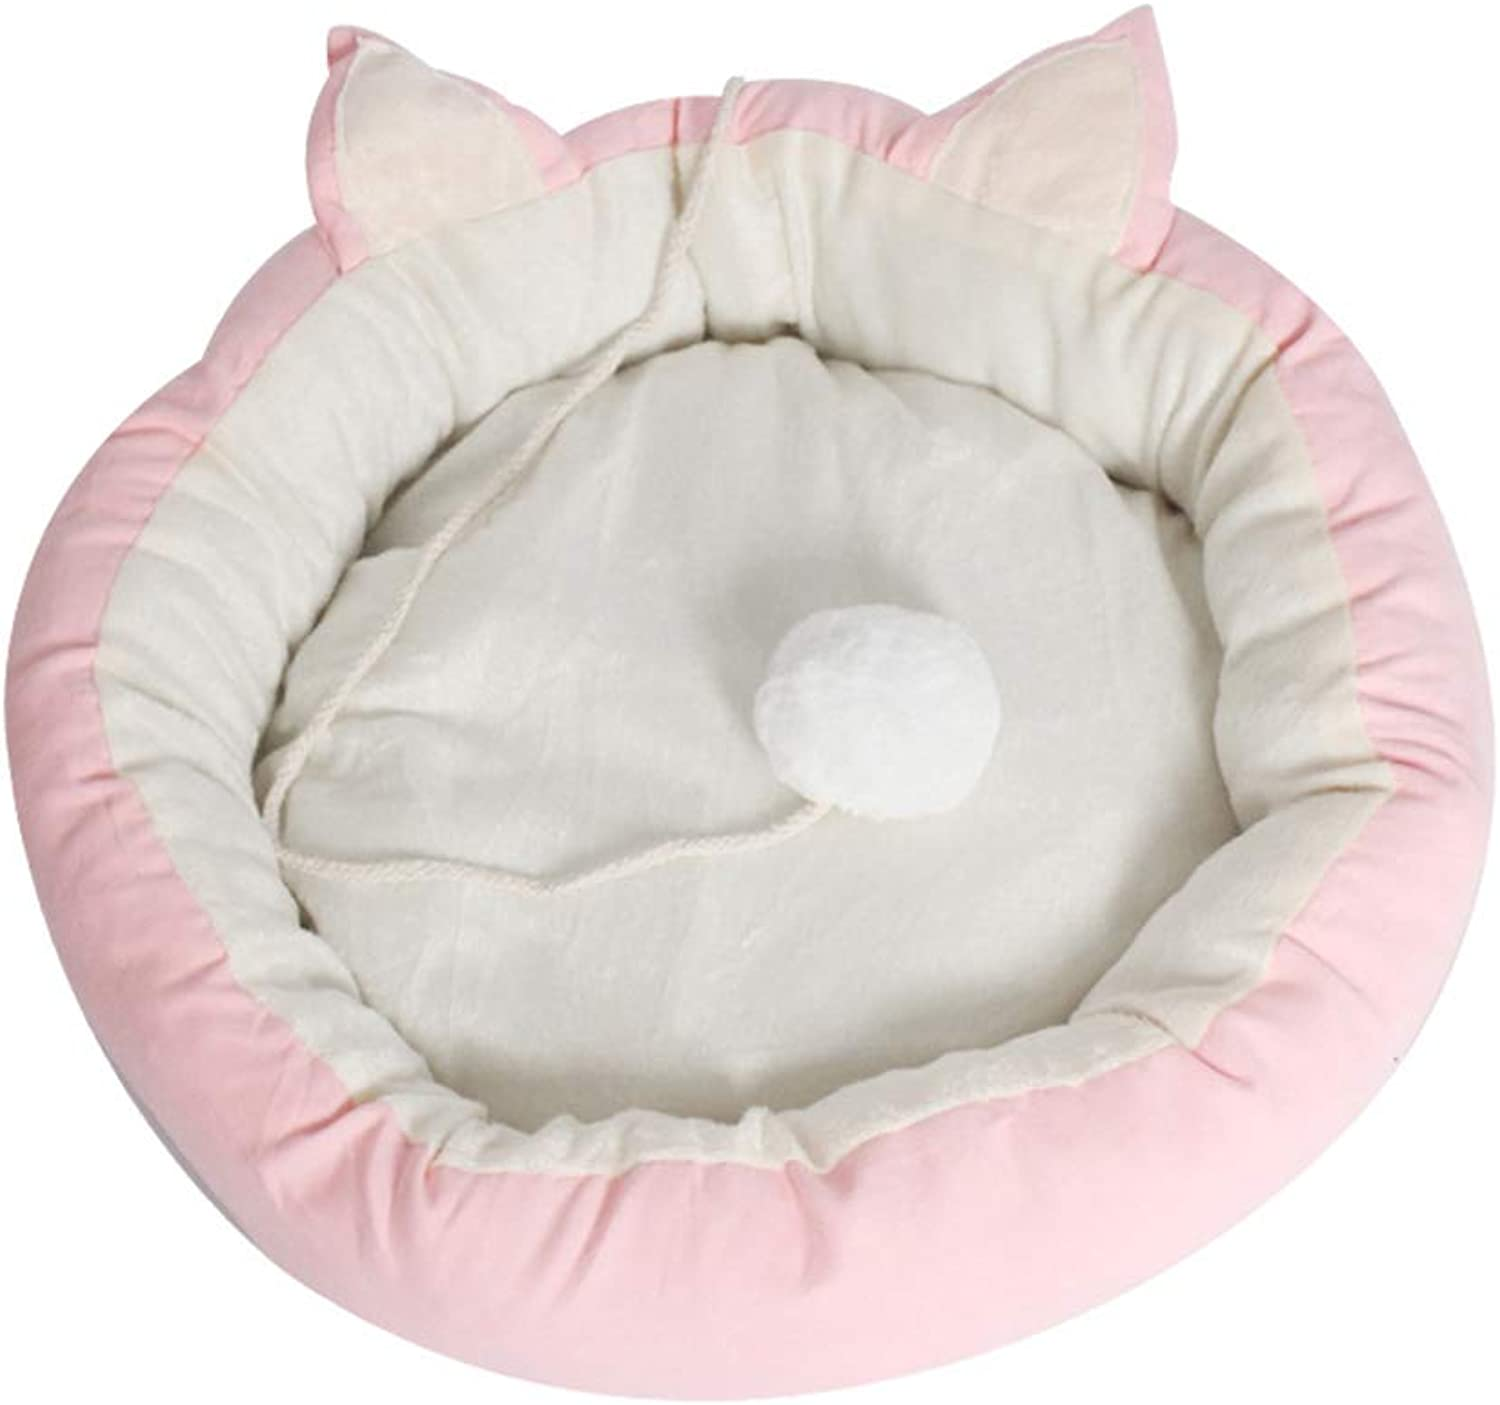 Cat Litter Kennel Small Dog Four Seasons Universal Removable Washable cat Bed cat mat cat Supplies,pinkwhite,Large